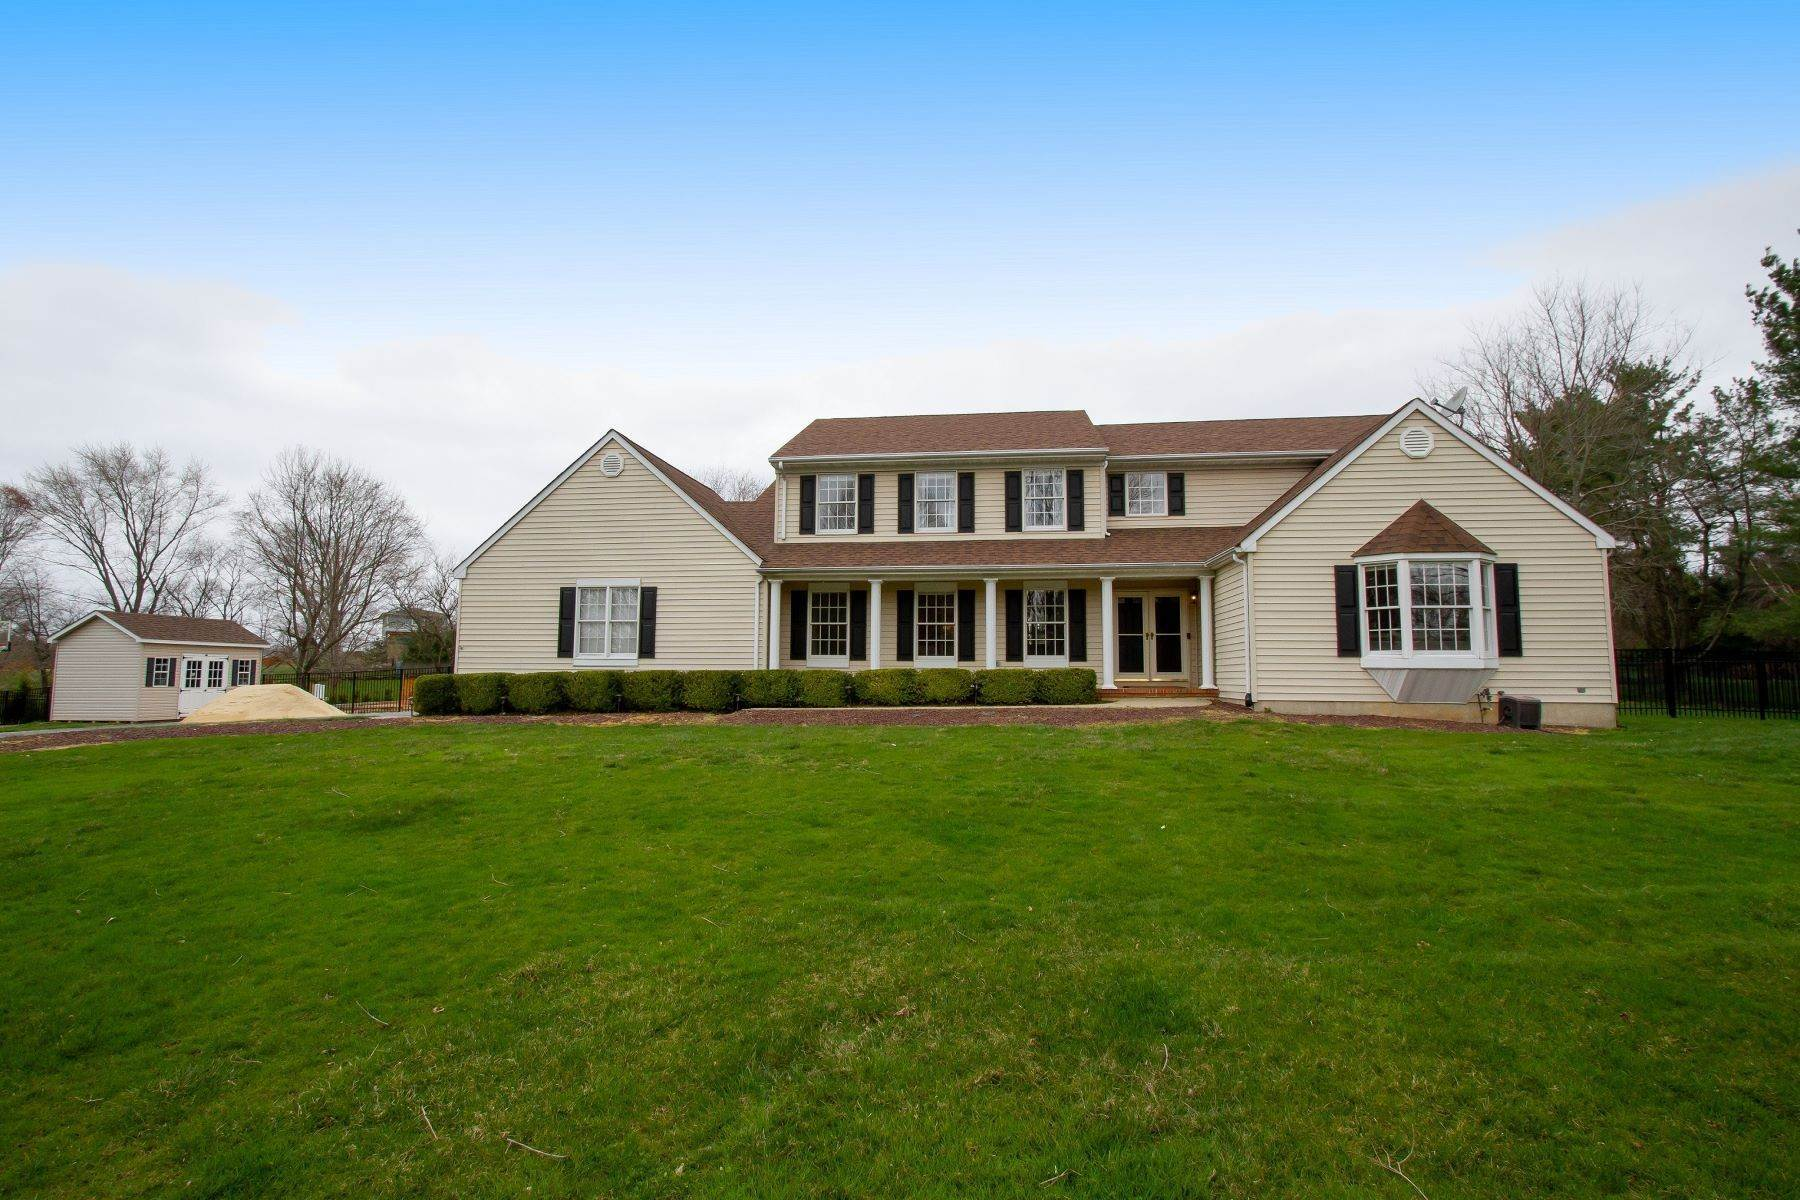 Single Family Homes vì Bán tại 19 Red Hawk Road S 19 Red Hawk Rd S, Colts Neck, New Jersey 07722 Hoa Kỳ